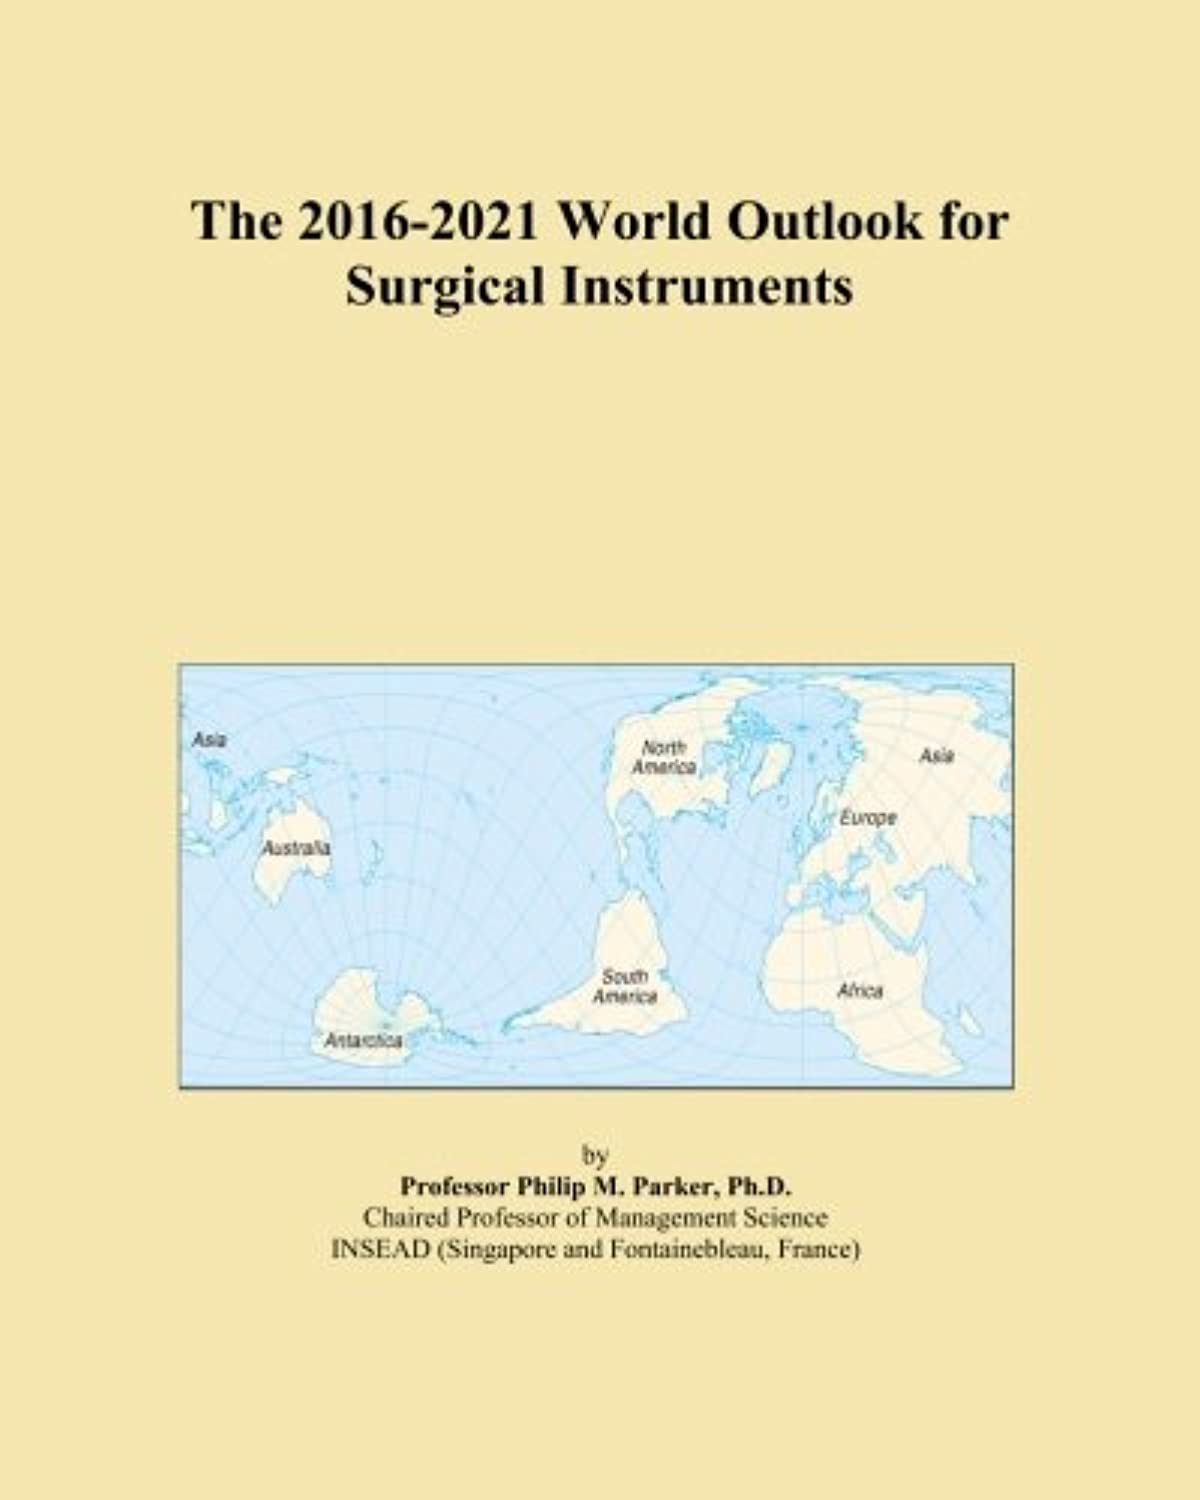 The 2016-2021 World Outlook for Surgical Instruments